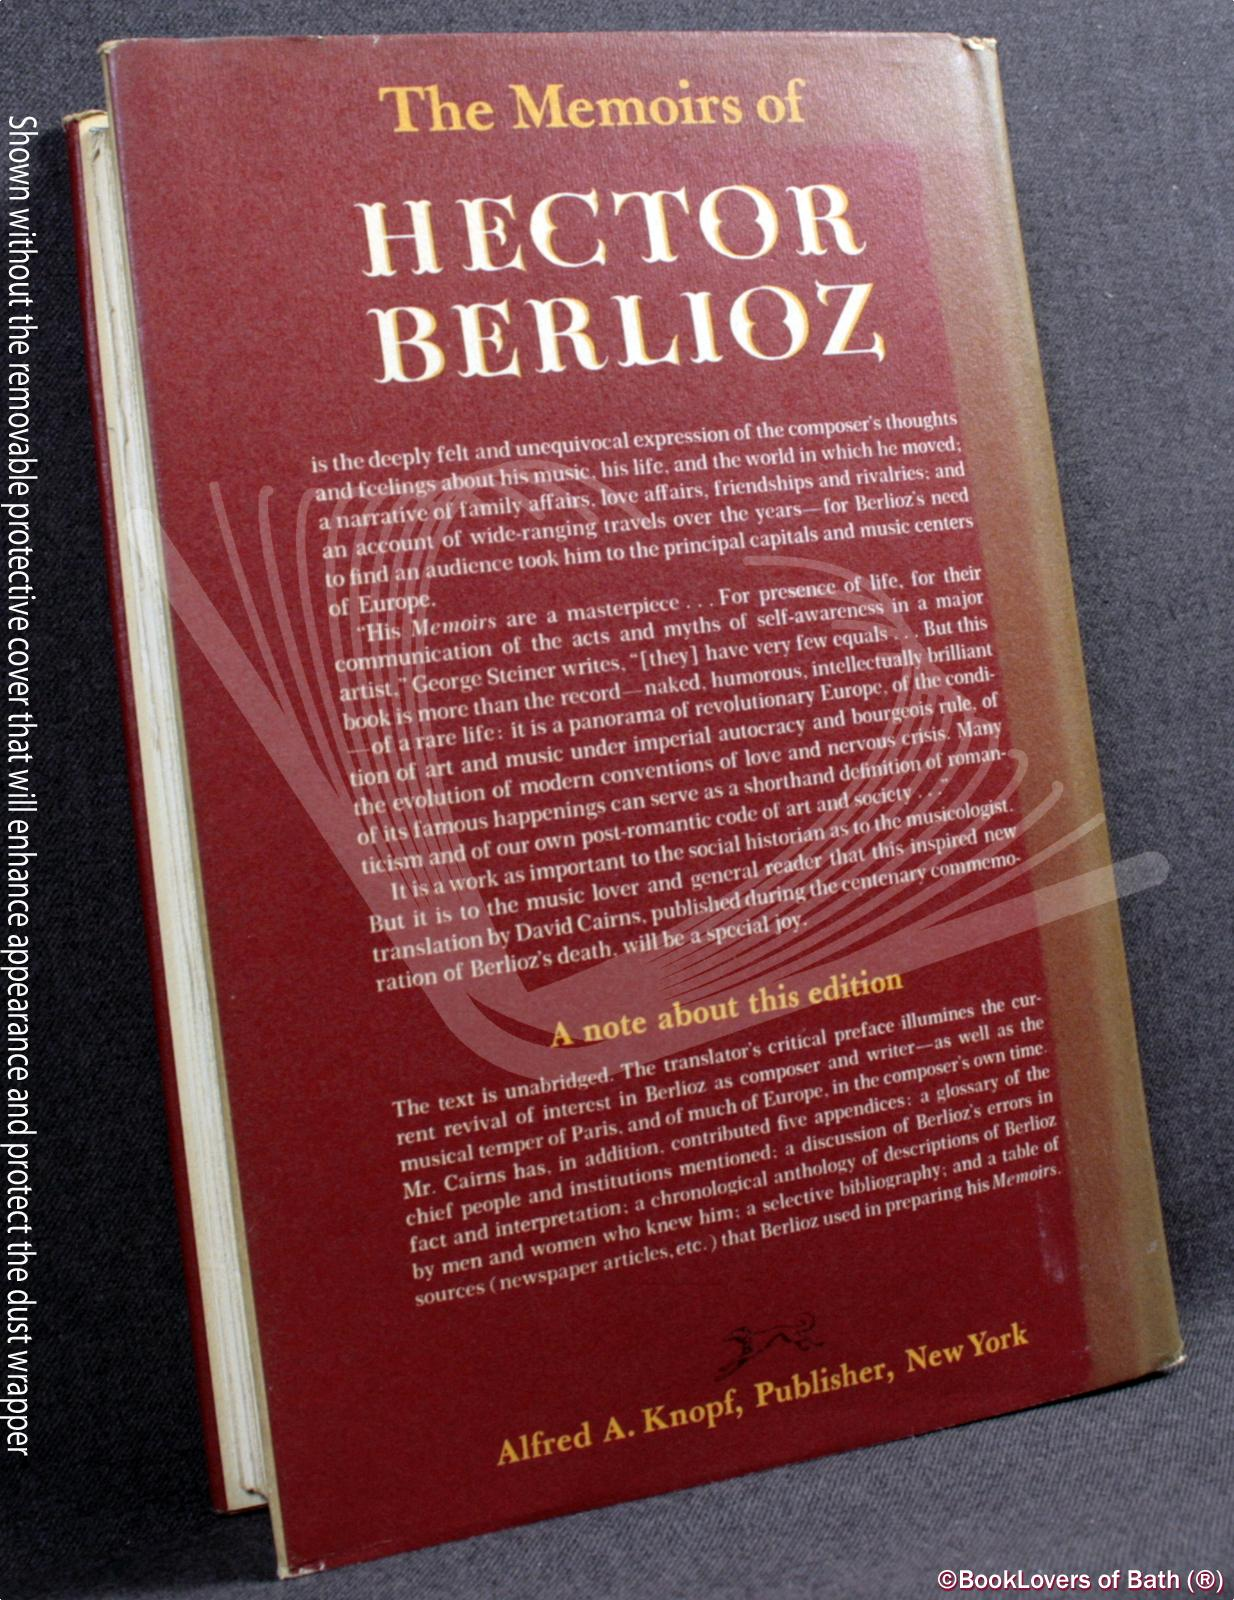 The Memoirs of Hector Berlioz: Member of the French Institute: Including His Travels in Italy, Germany, Italy, Russia, and England 1803-1965 - Hector Berlioz